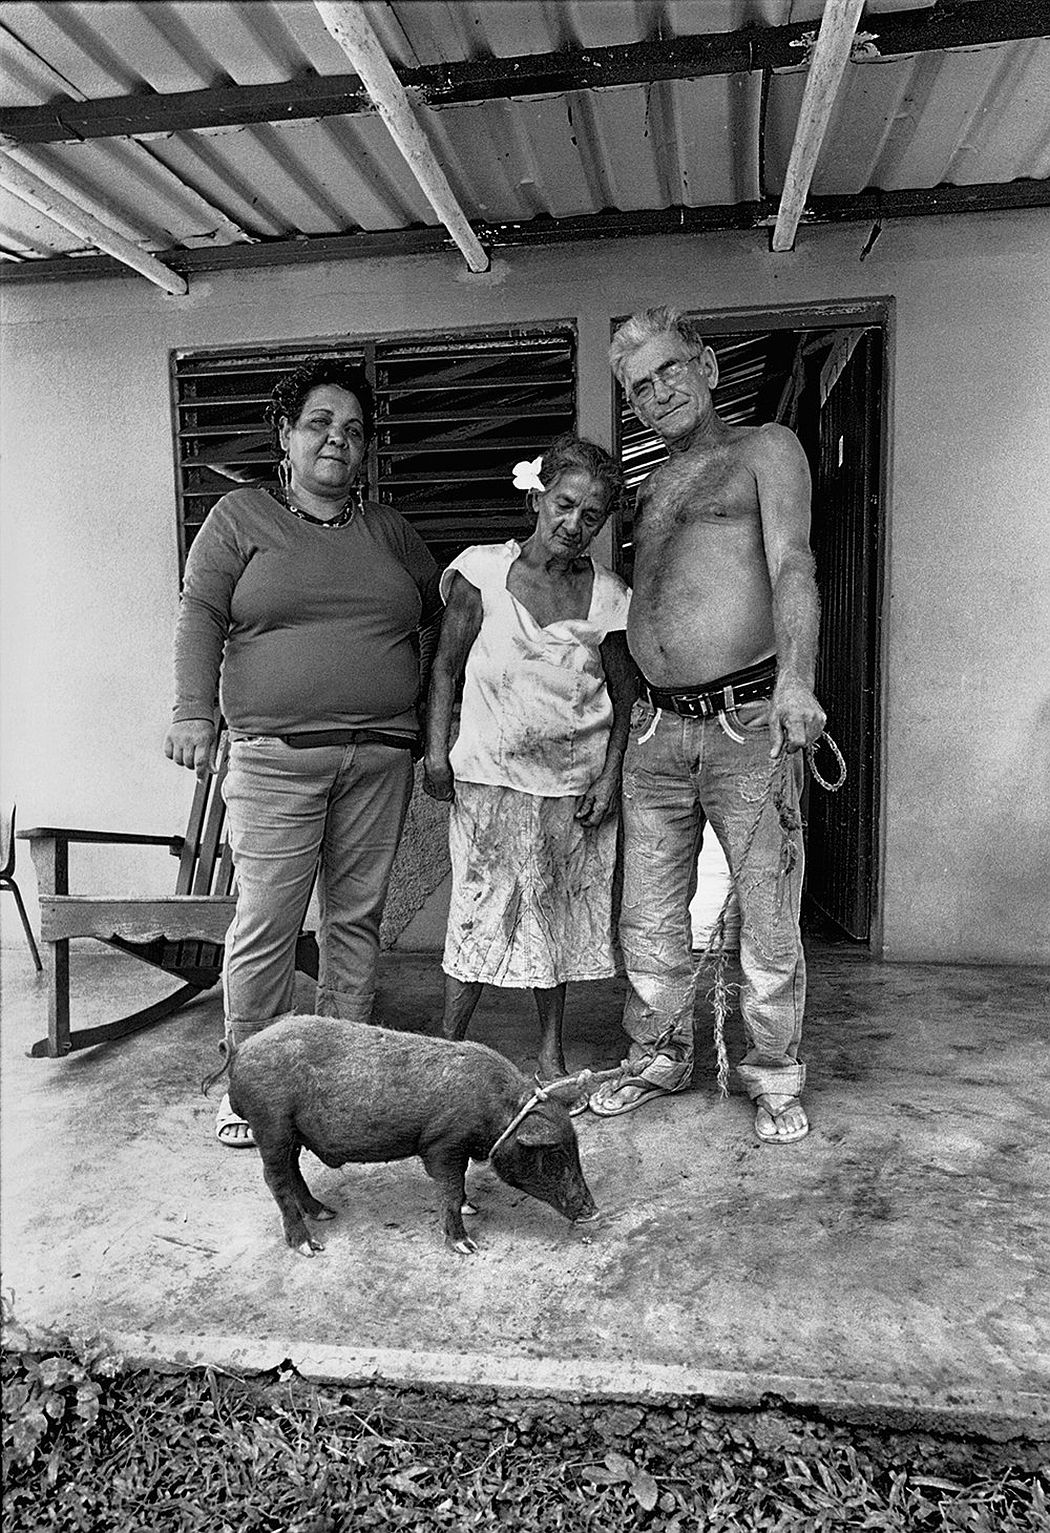 © CUBA by Elliott Erwitt, published by teNeues, www.teneues.com, Peasant family, Viñales, Pinar del Río, 2015, Photo © 2017 Elliott Erwitt/Magnum Photos. All rights reserved.